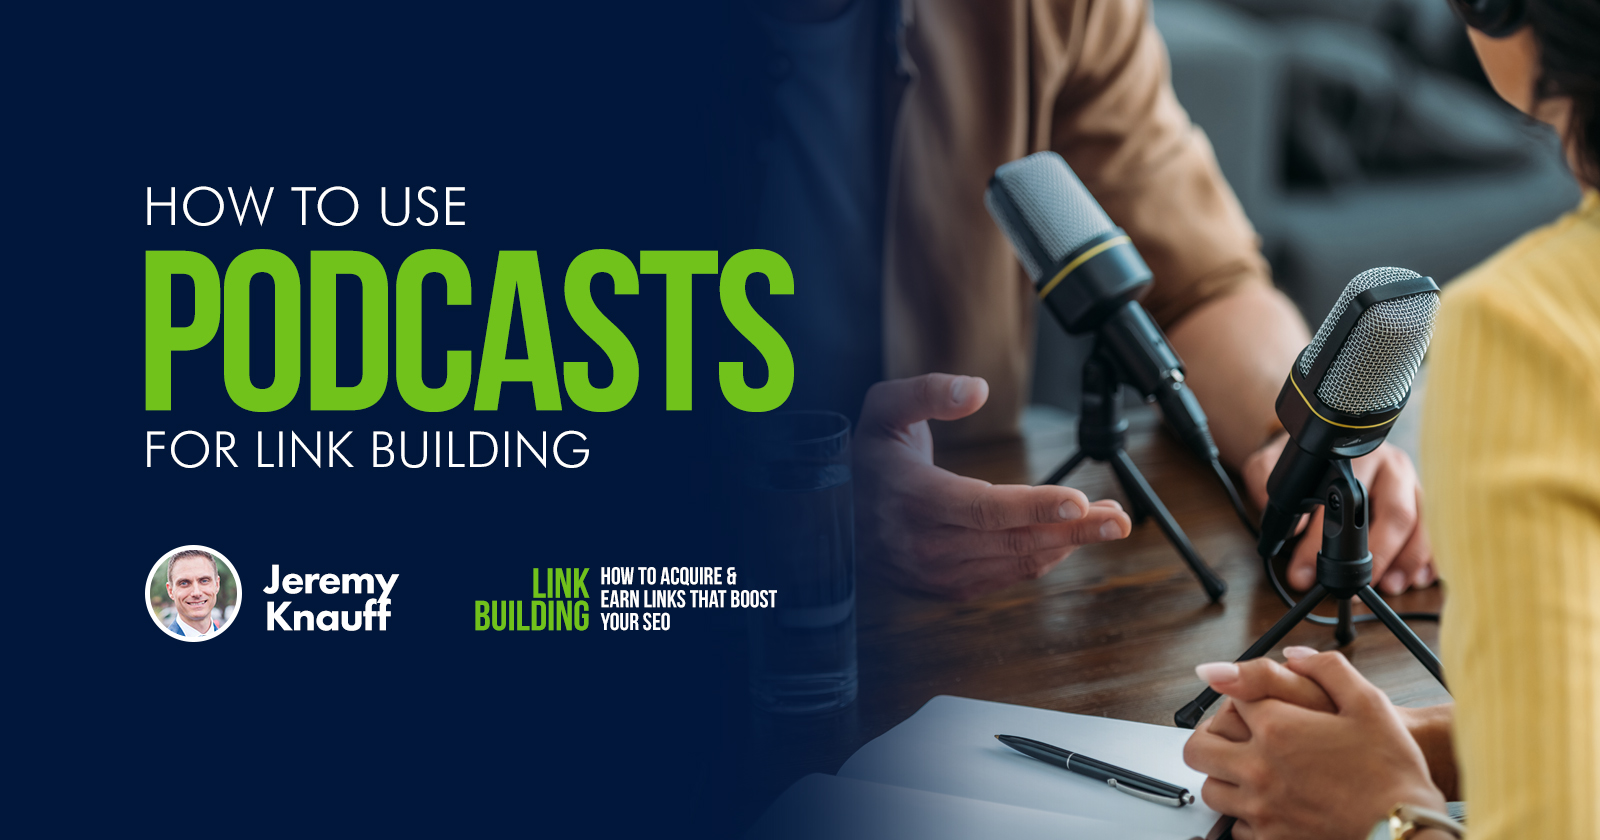 How to Use Podcasts for Link Building